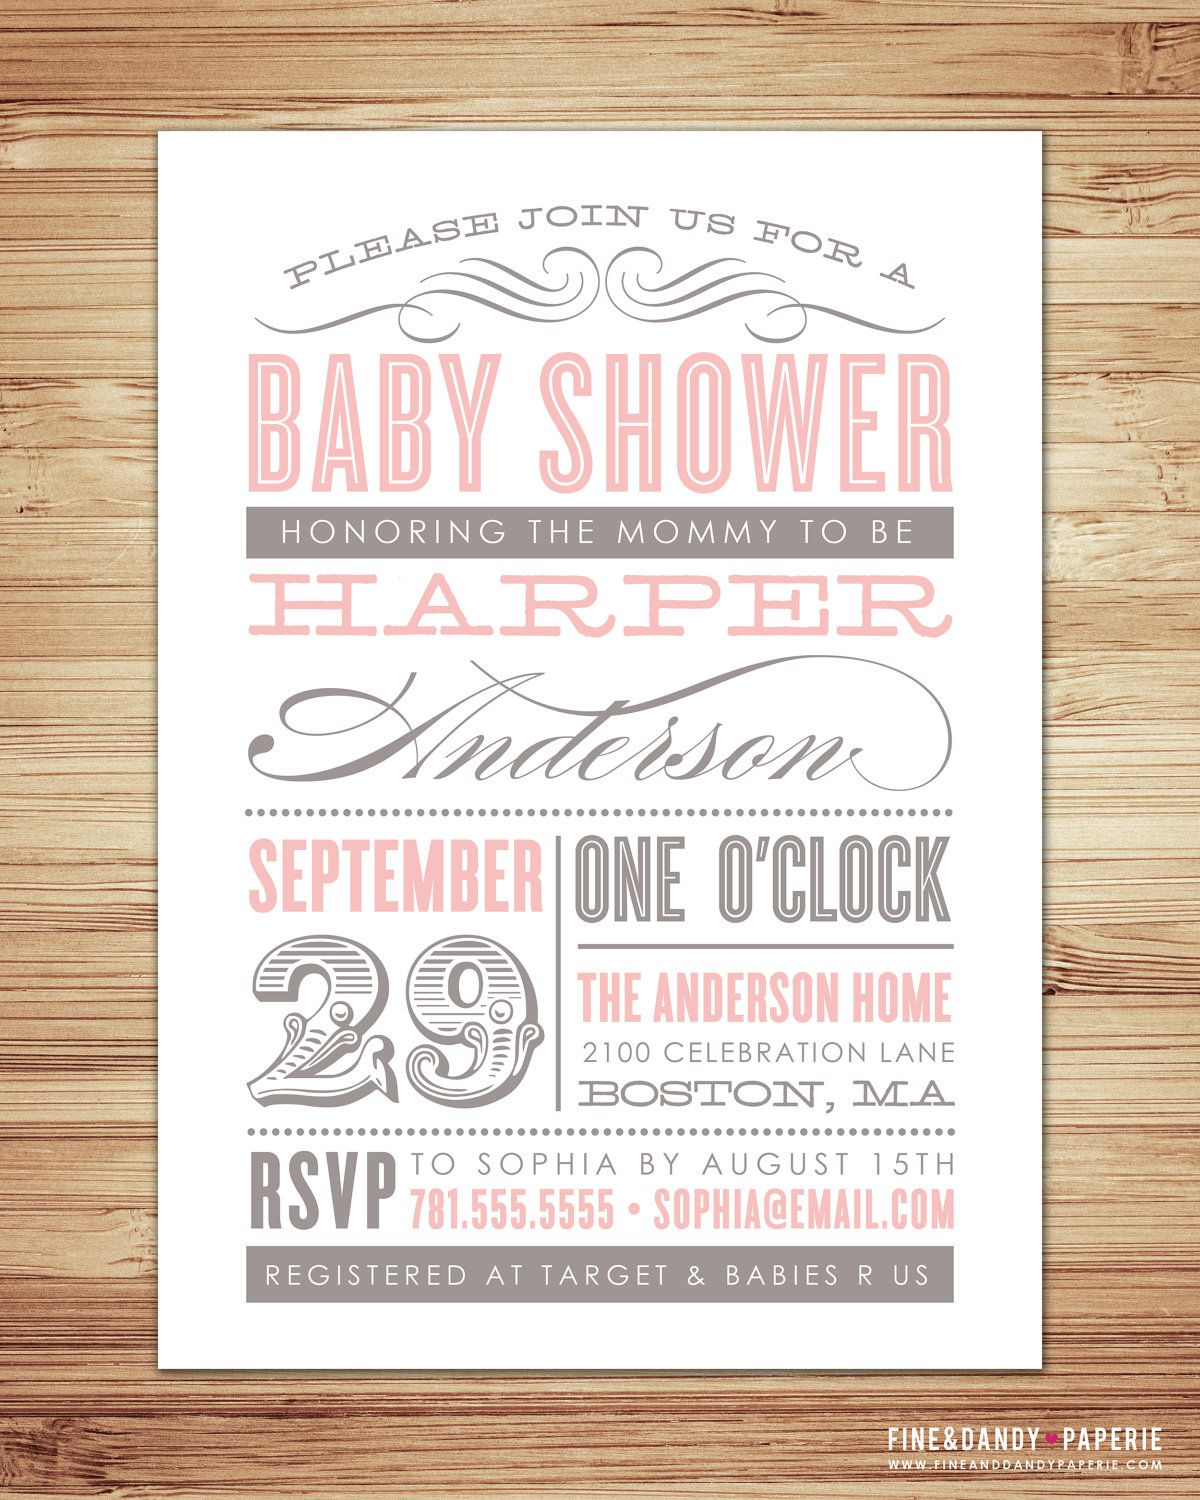 Old Fashioned Baby Shower Invitation 20 00 Via Etsy Would Be